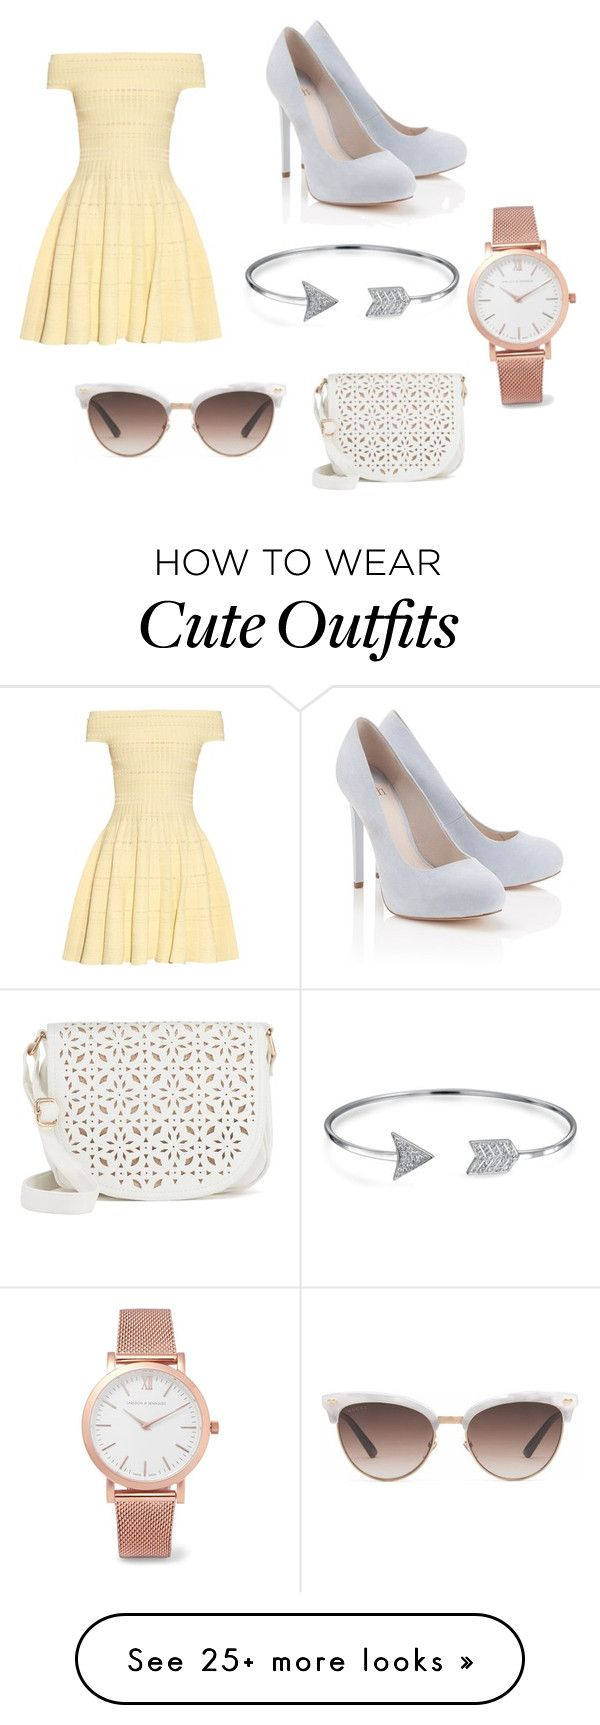 """""""Cute date outfit"""" by brookeleegrambau on Polyvore featuring Alexander McQueen, Lipsy, Under One Sky, Bling Jewelry, Larsson & Jennings and Gucci"""